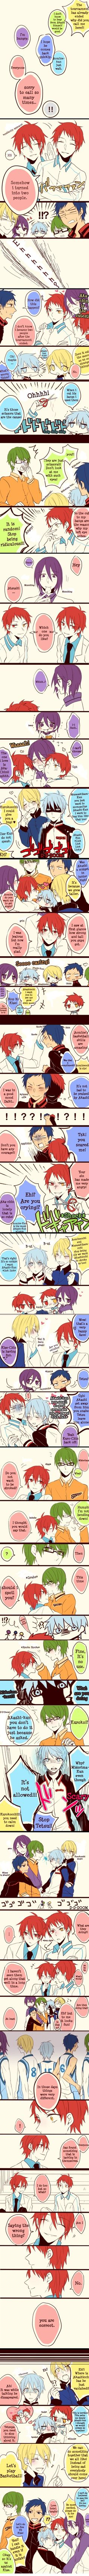 Akashi likes Murasakibaracchi but Kuroko likes Akashi. Oh, how troublesome :D I love it how they all want Akashi to pay attention to them! Even though Kuroko wants it a little too much XD